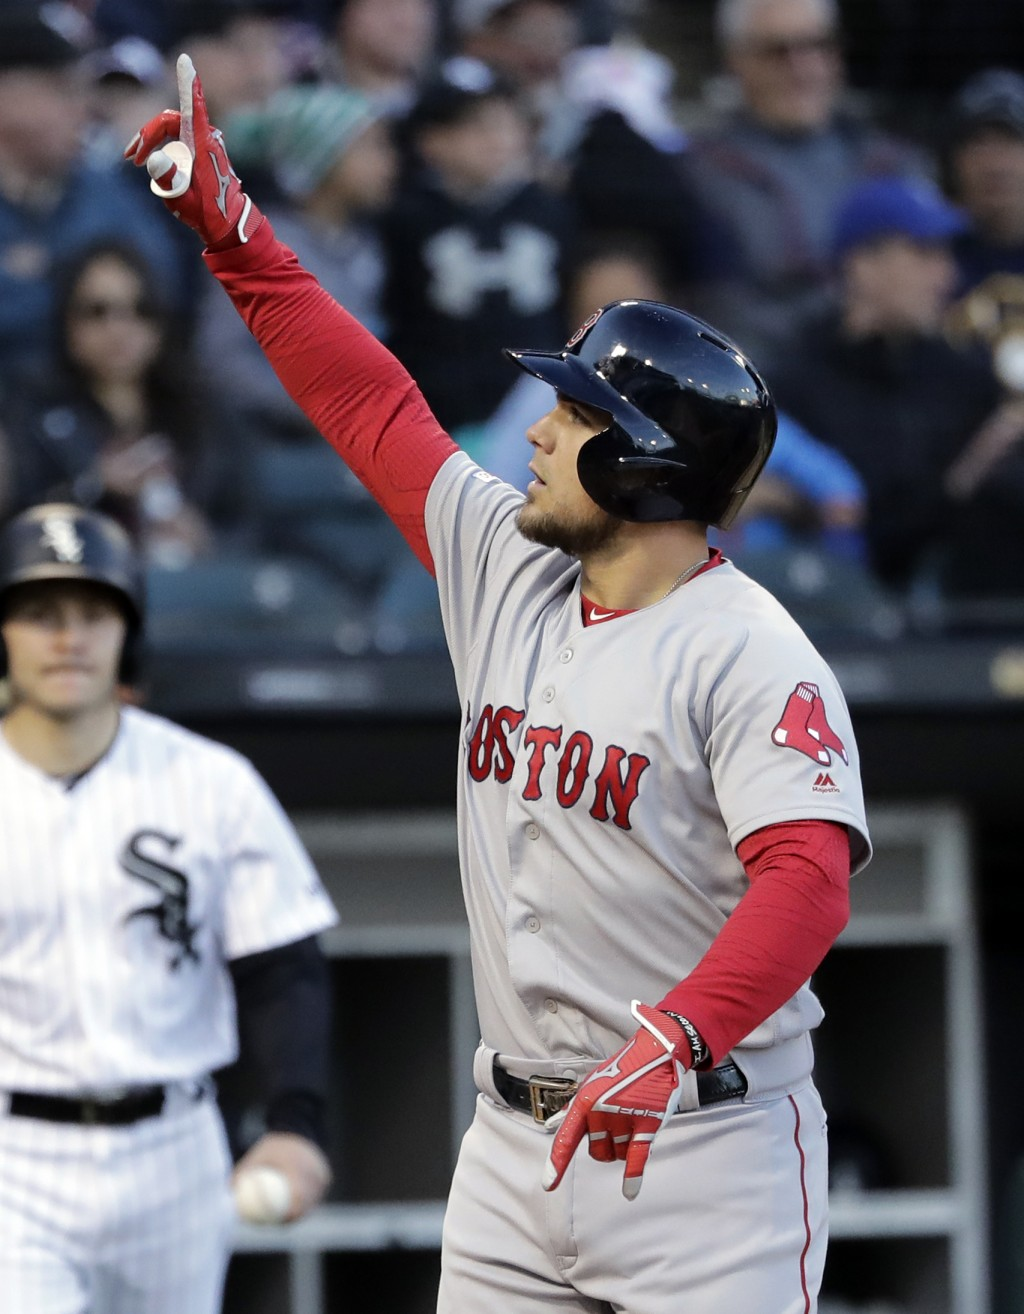 Boston Red Sox's Michael Chavis celebrates after hitting a solo home run against the Chicago White Sox during the third inning of a baseball game in C...